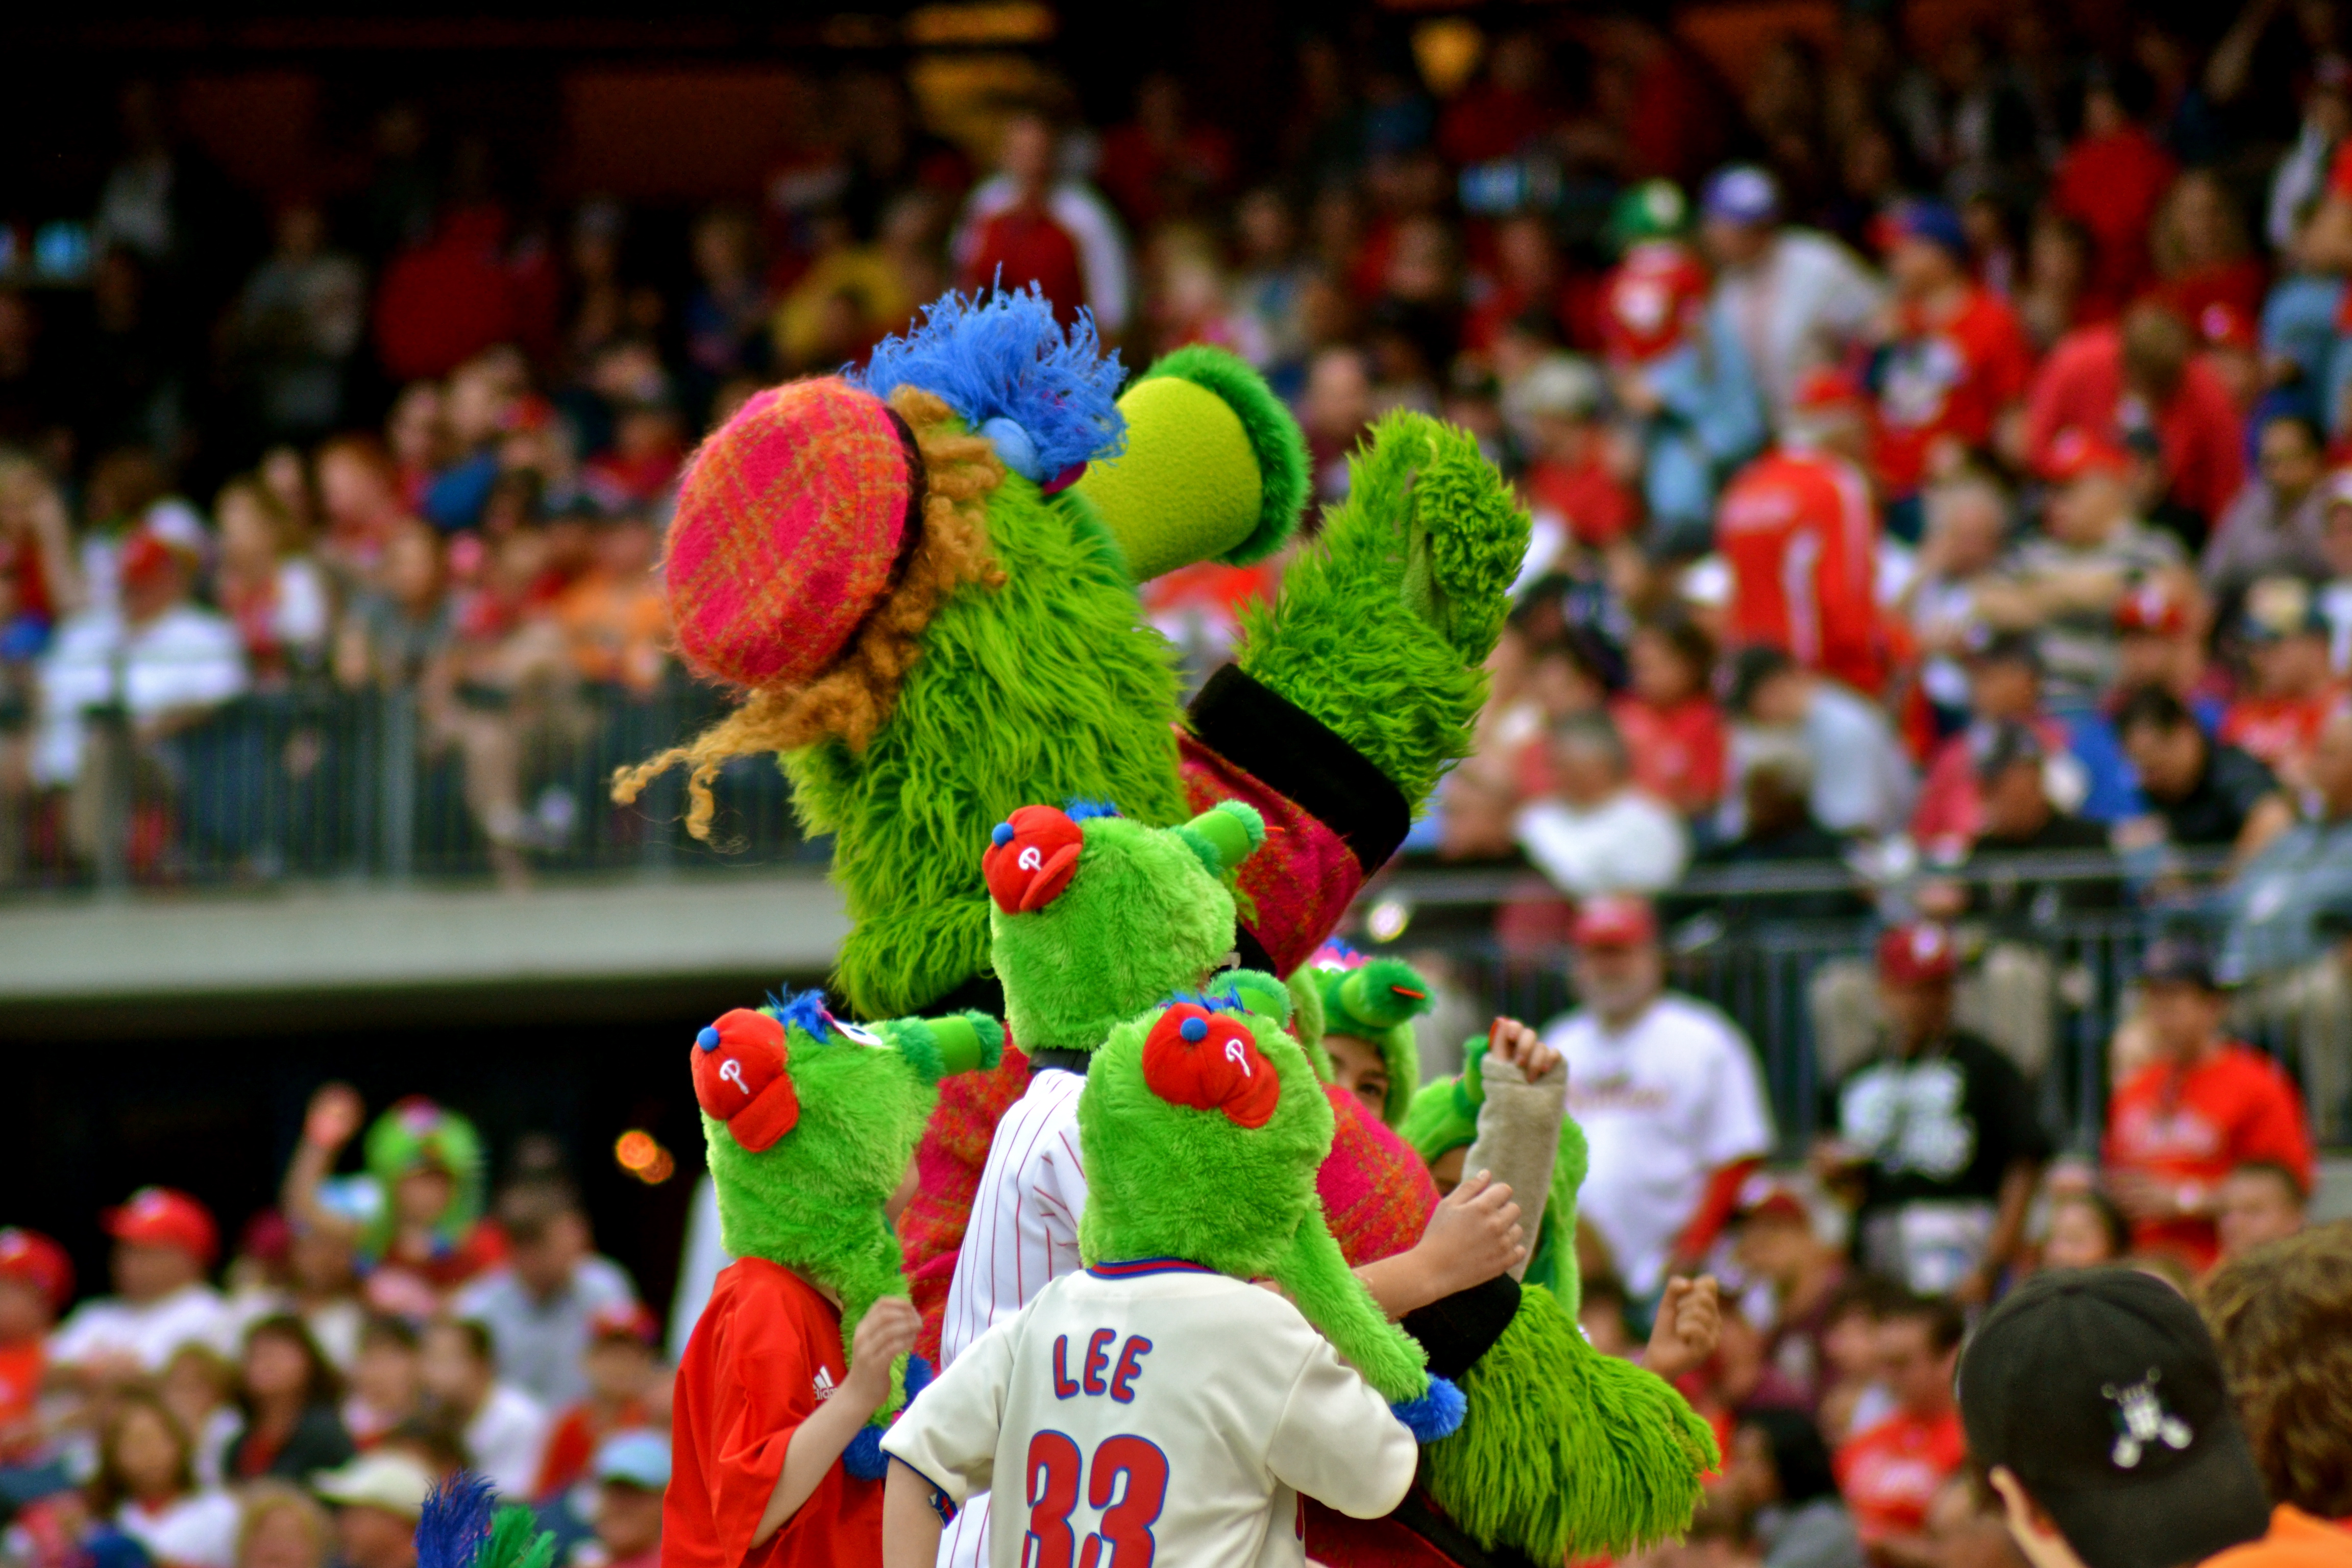 Philly Phanatic Mom Phillie Phanatic And Kids With